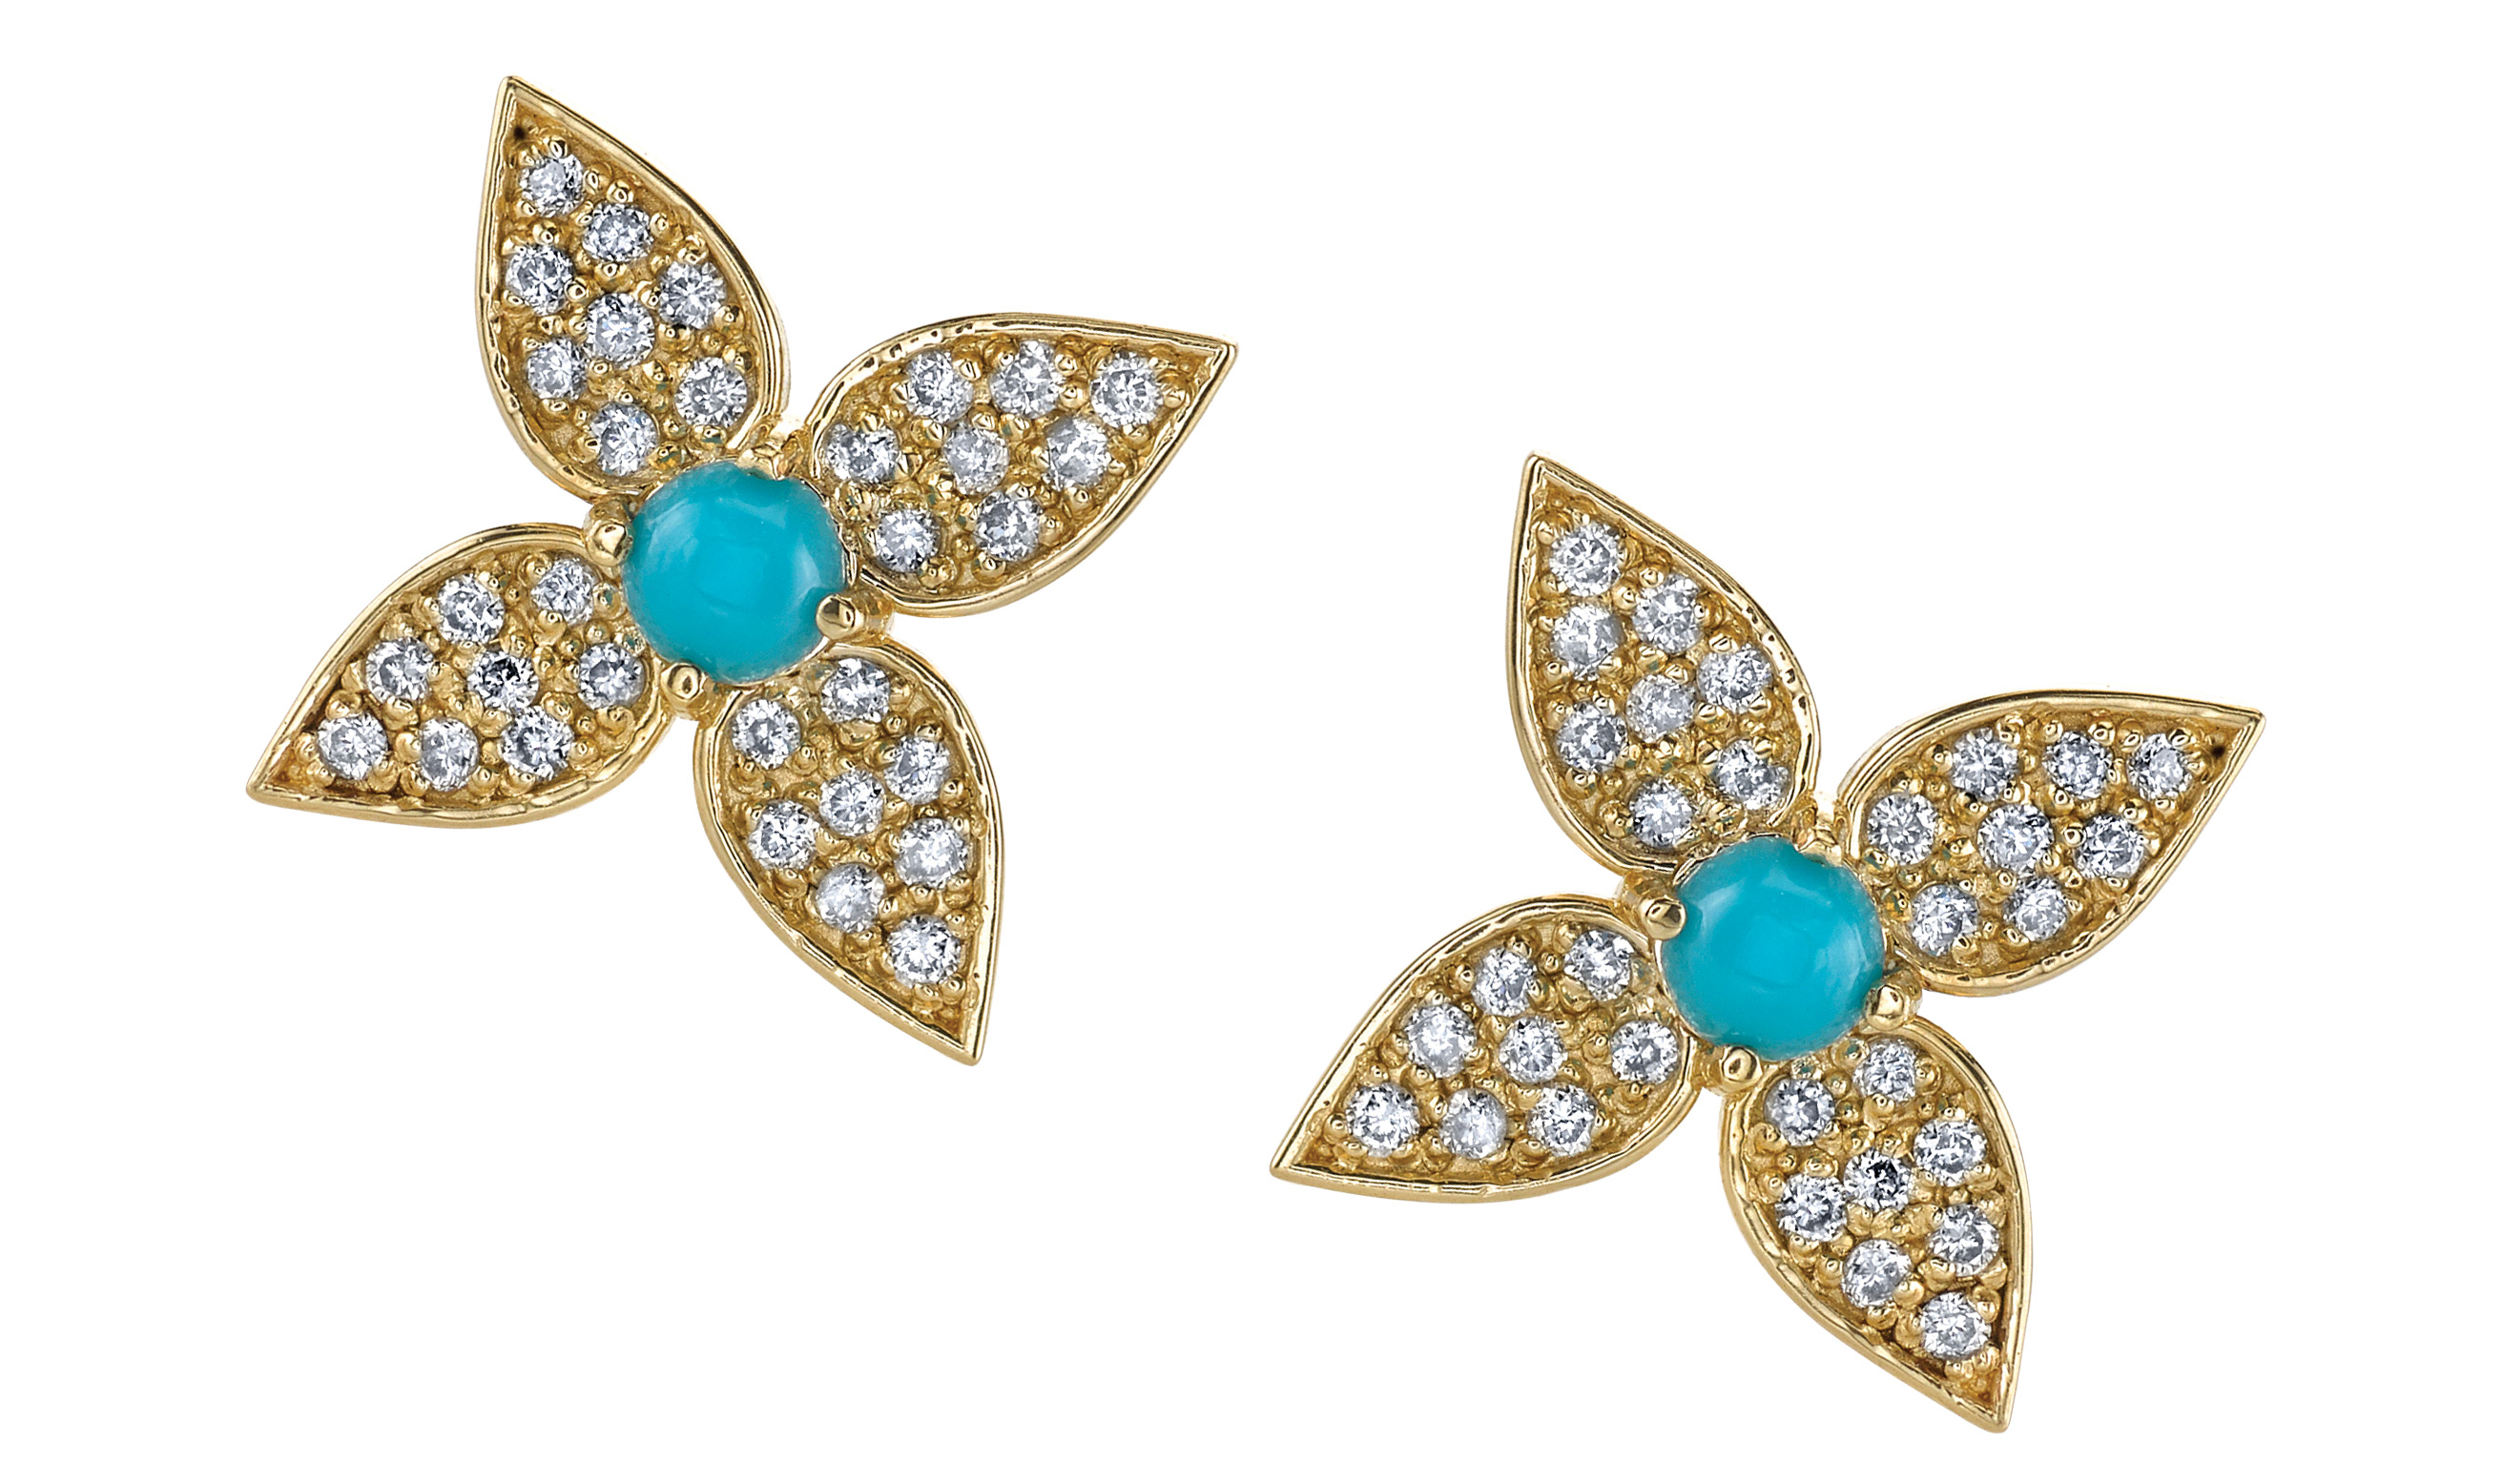 jck0217_asks_sylvacieearrings_hrvrtcc.jpg